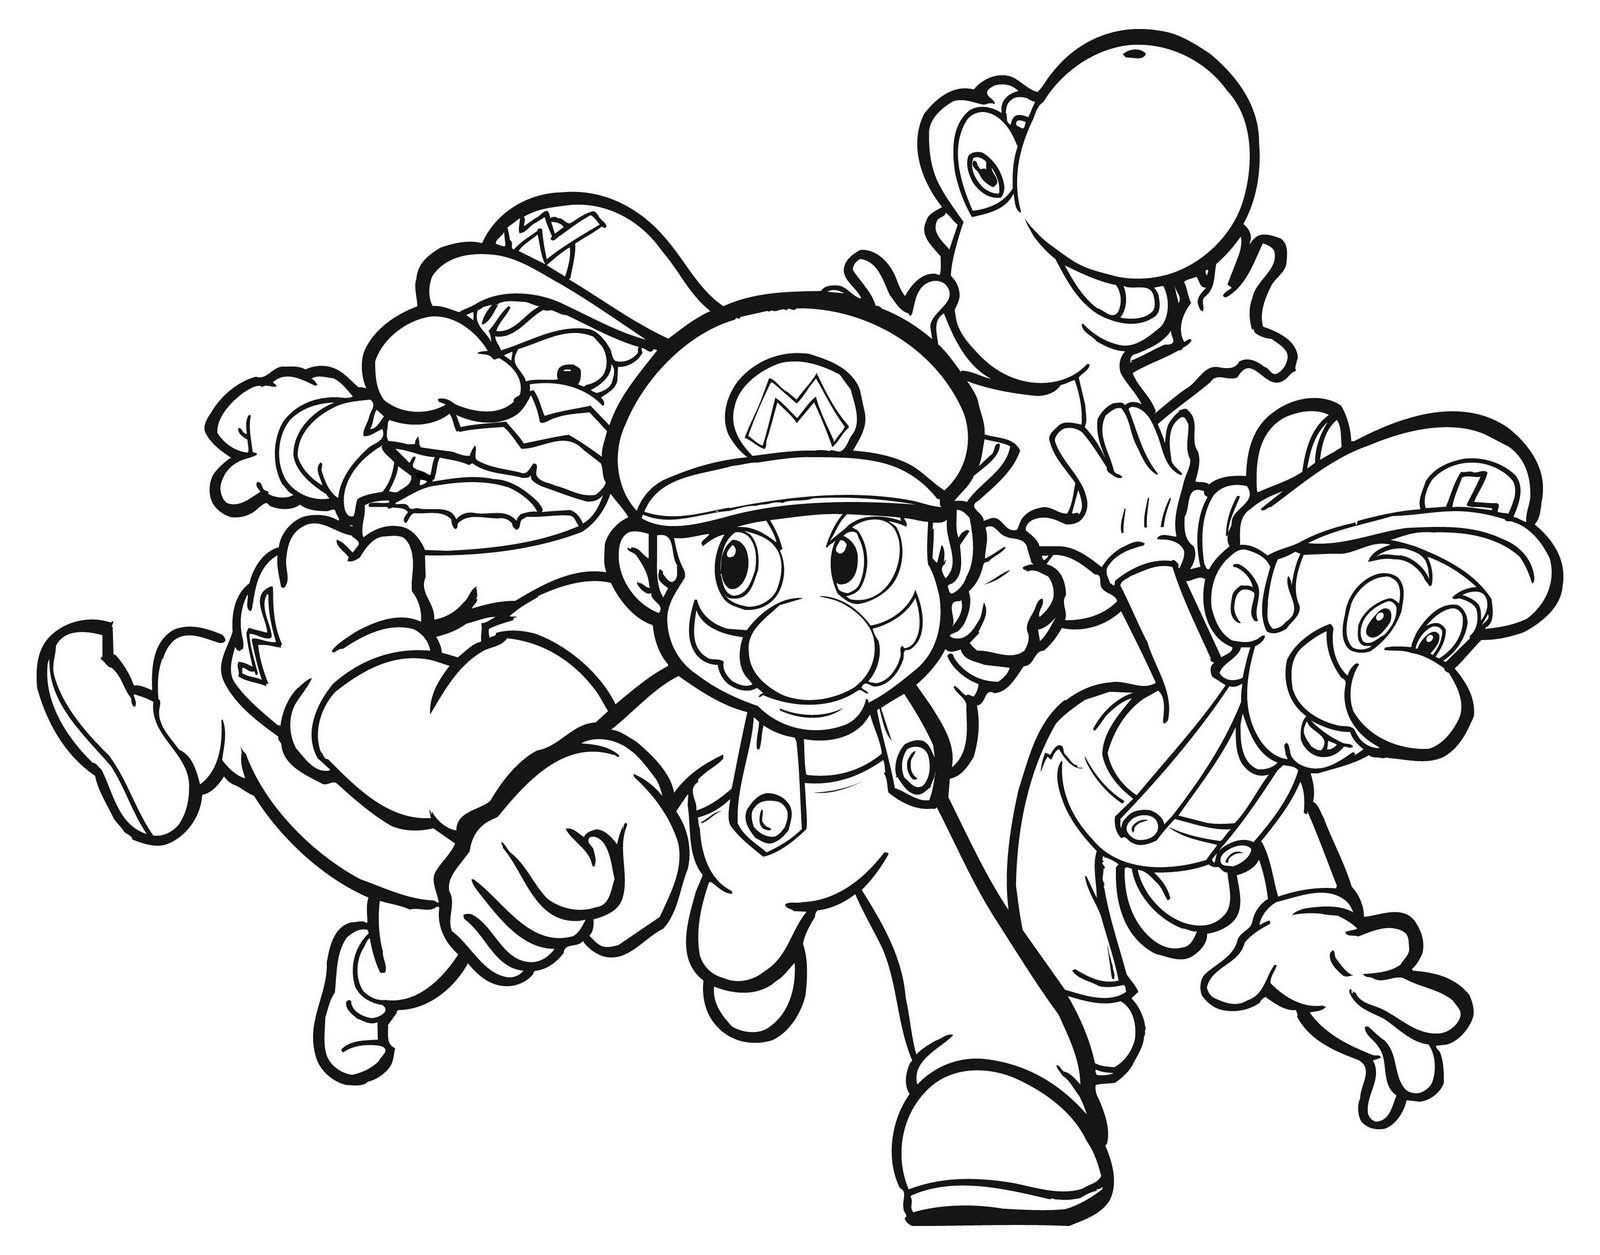 Free Printable Mario Coloring Pages For Kids With Images Super